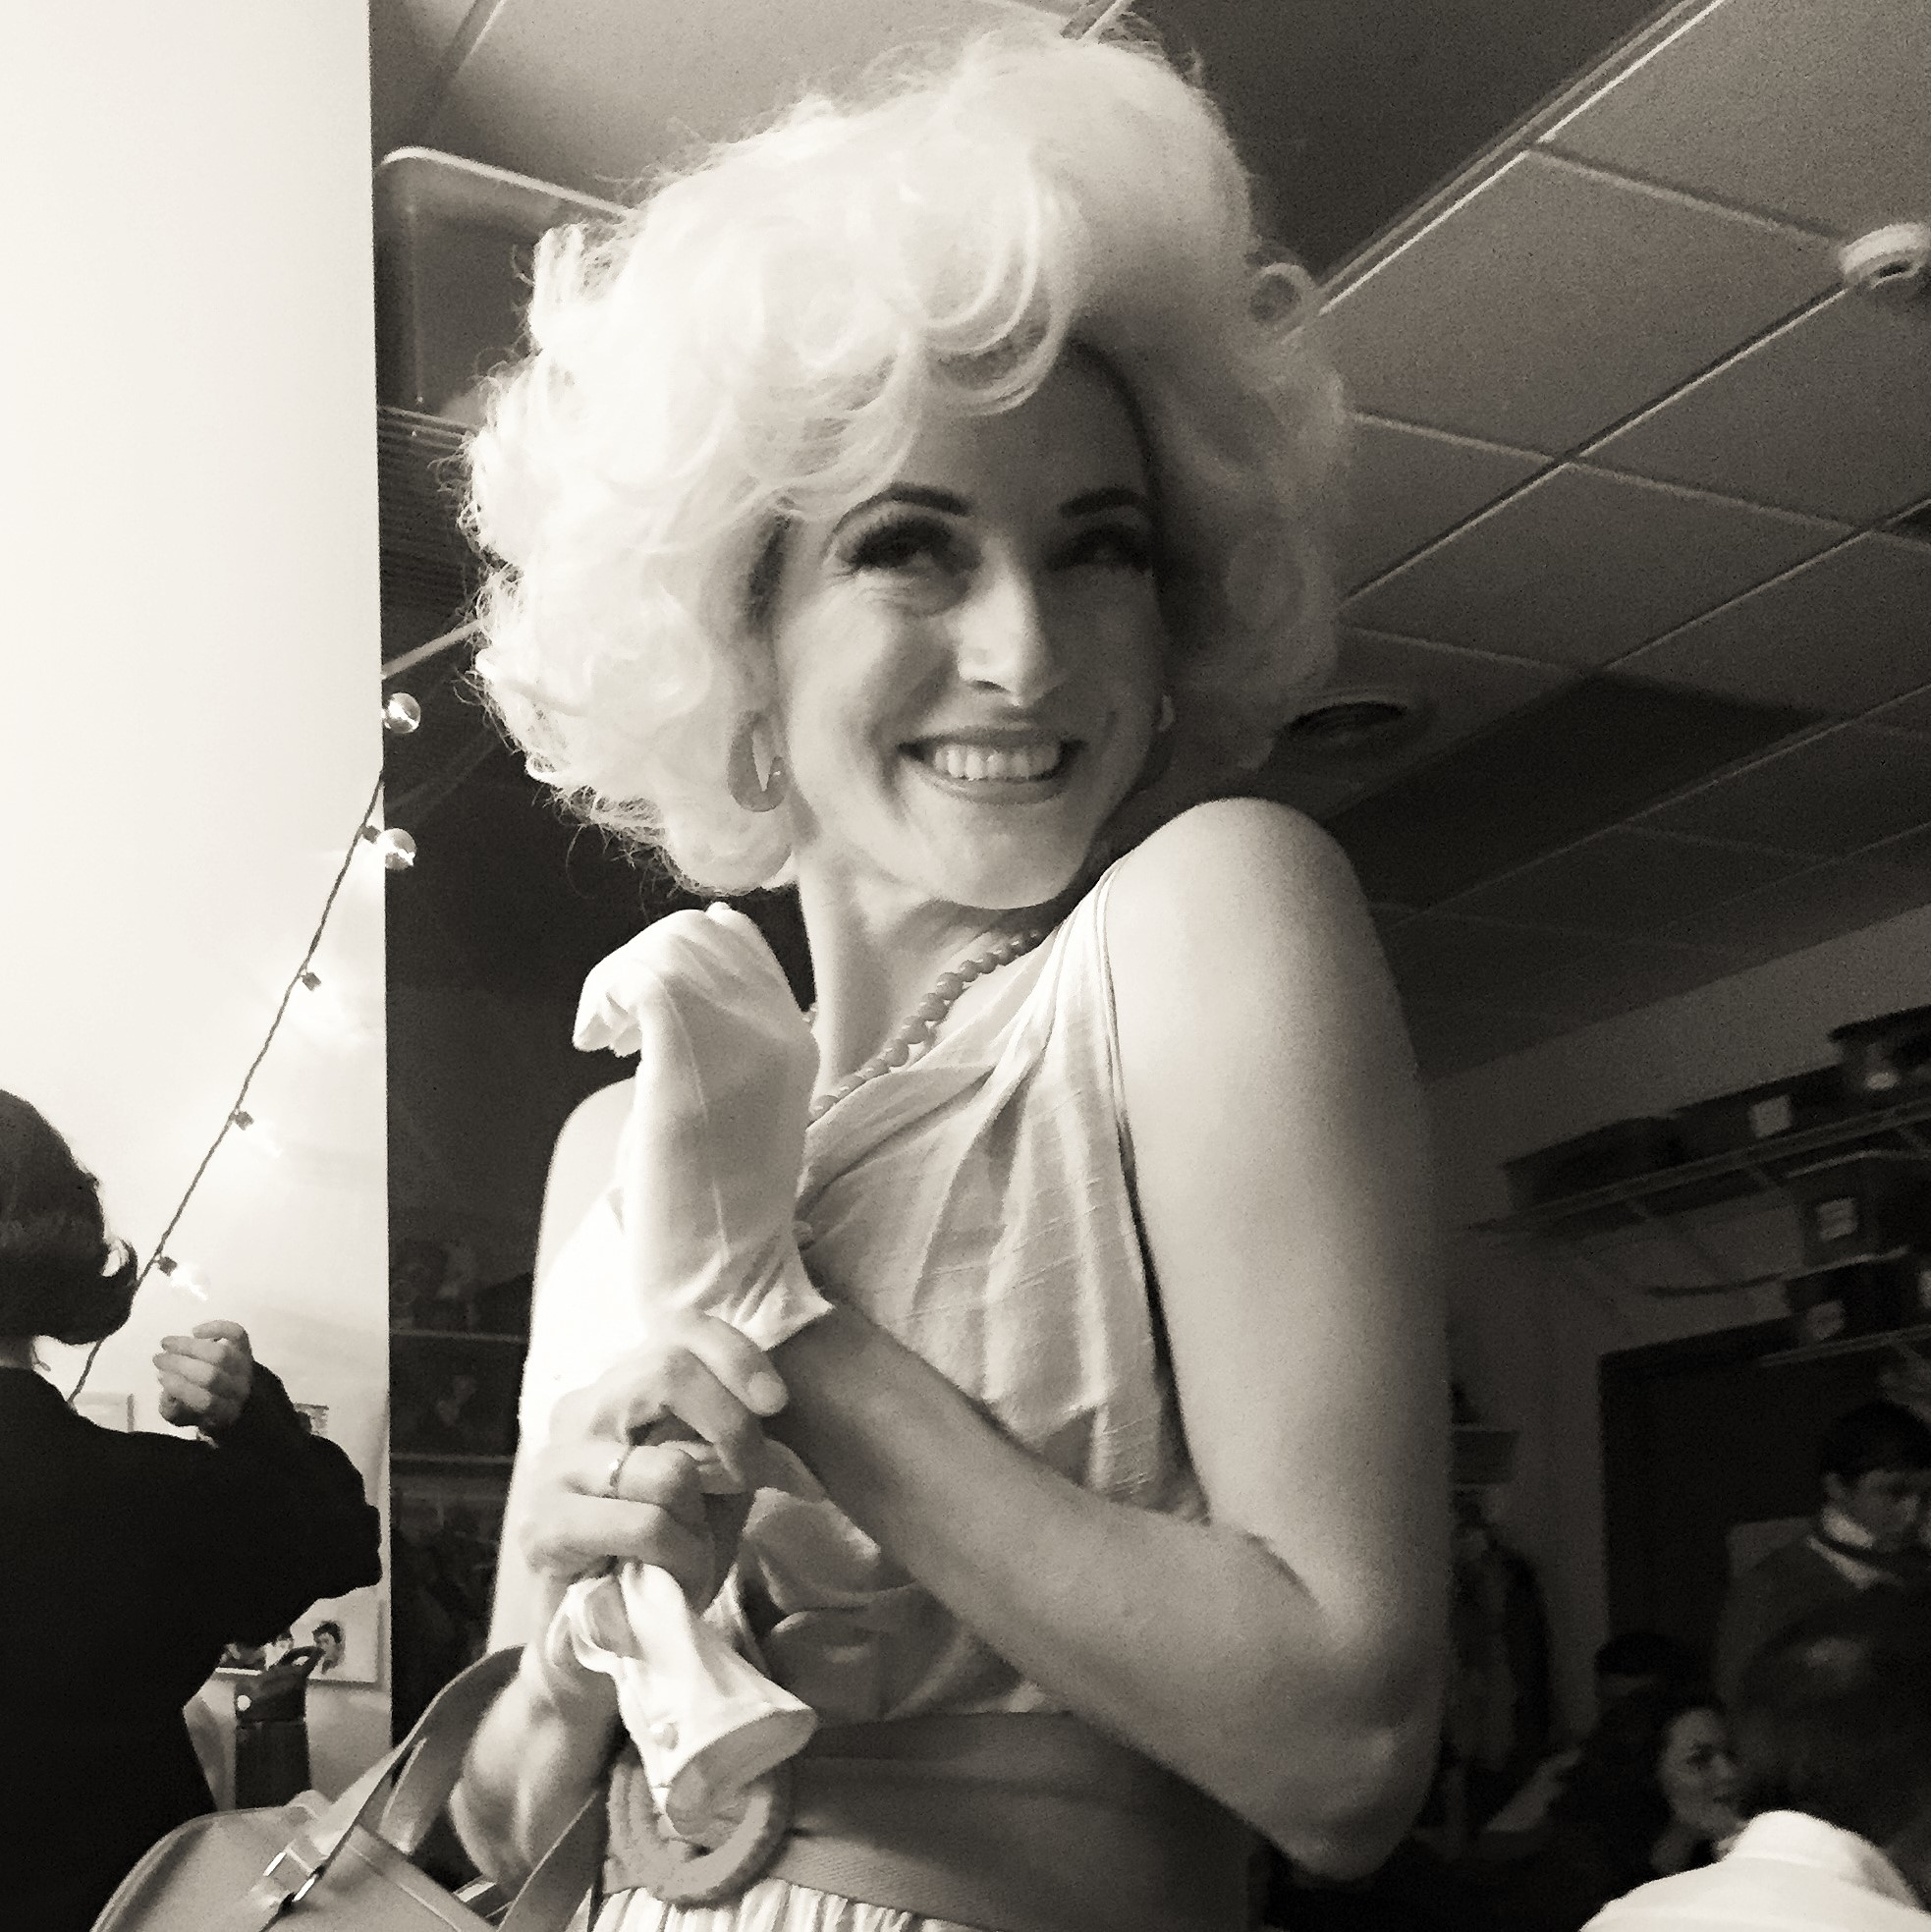 Me as Hedy Larue in How to Succeed in Business Without Really Trying. Serious question: Do I look like Marilyn Monroe, or more Rose Nylund from Golden Girls? Photo credit: Katie Bowers.